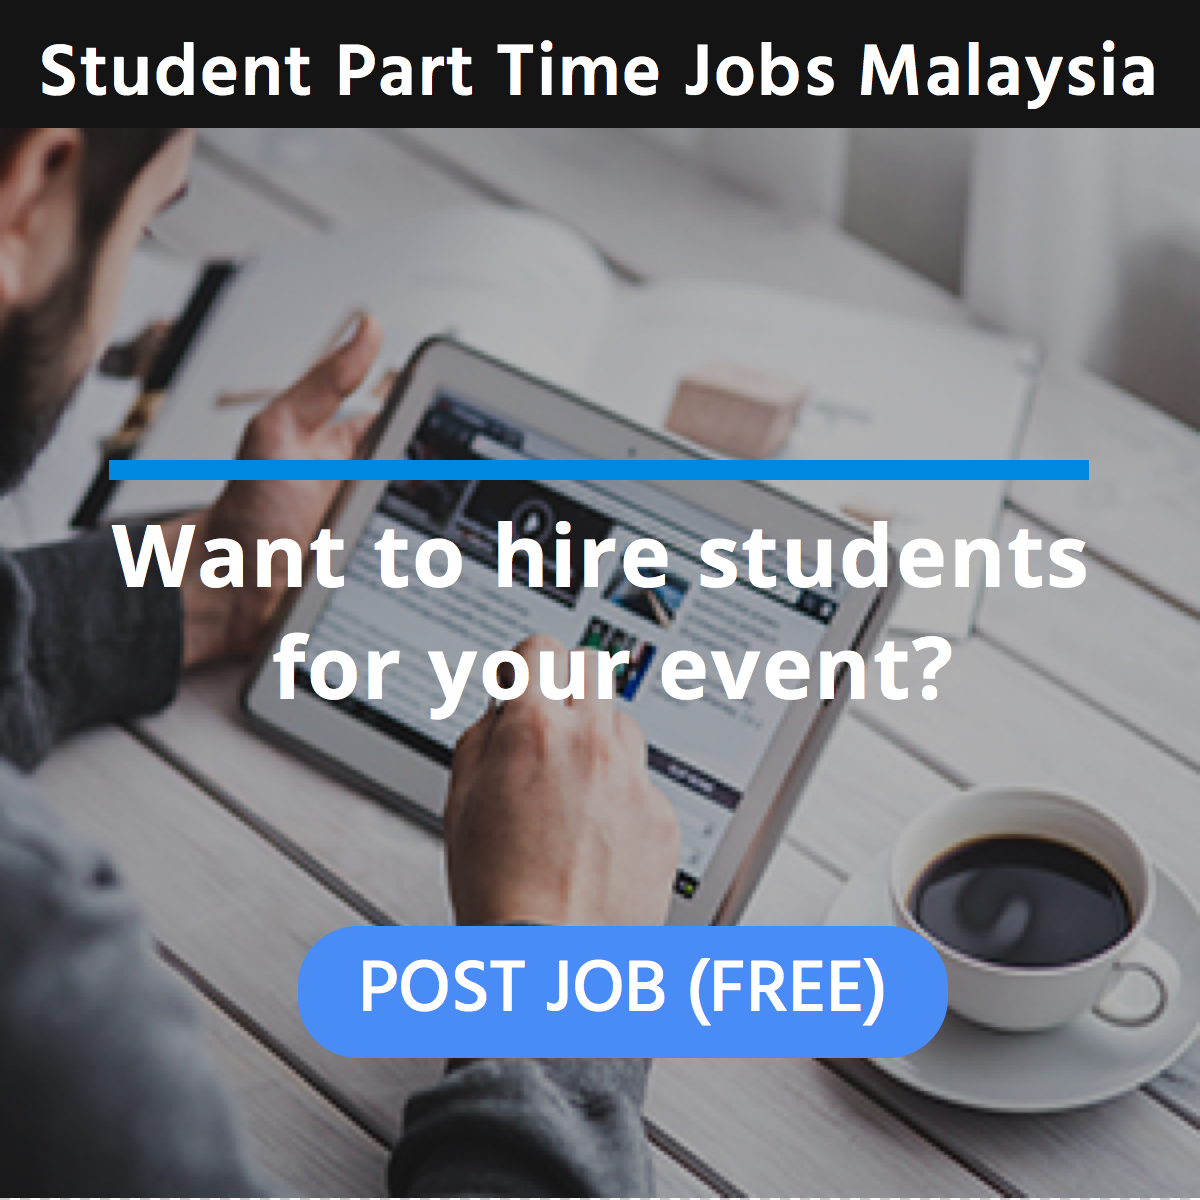 People also searched: part time - weekend part time - part time job for student - part time promoter - weekend - part-time weekend - promoter - part time teacher Get new jobs for this search by email My email: Also get an email with jobs recommended just for me.